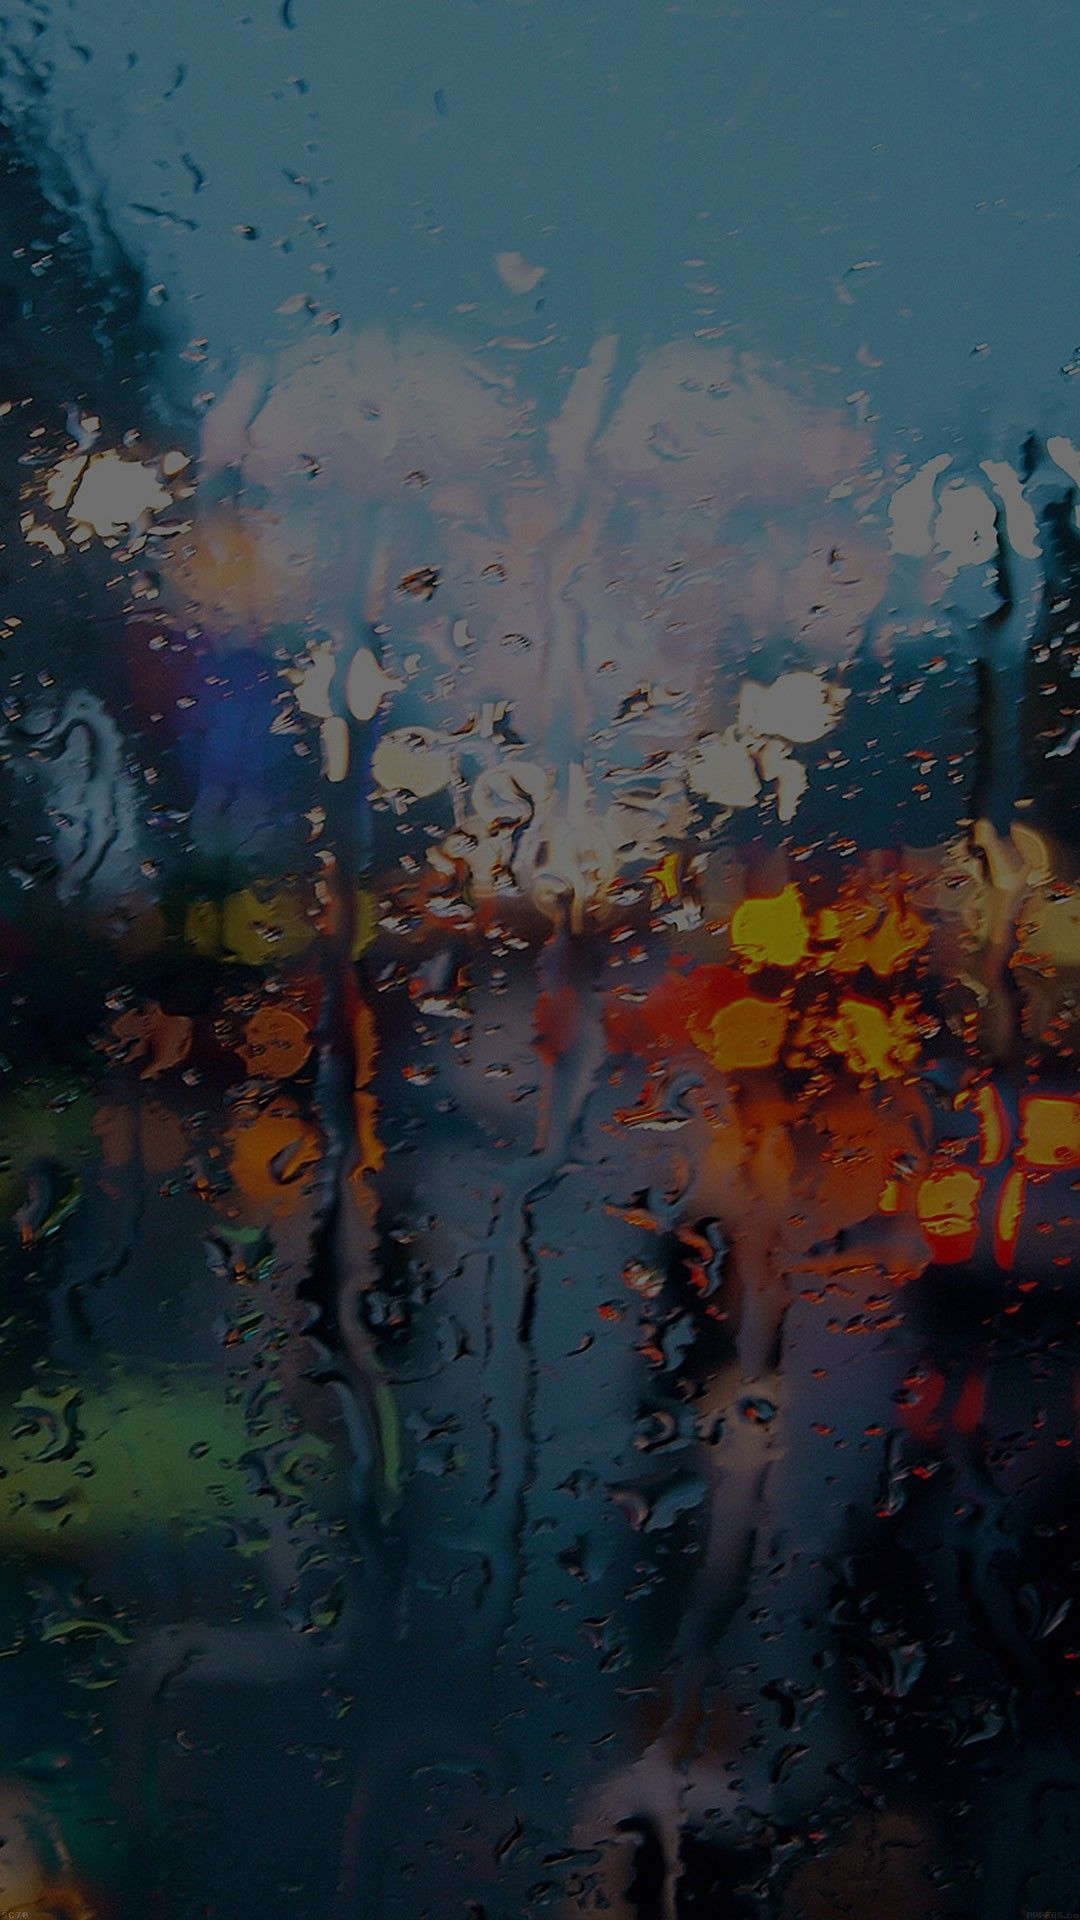 Rain Wallpaper Ios